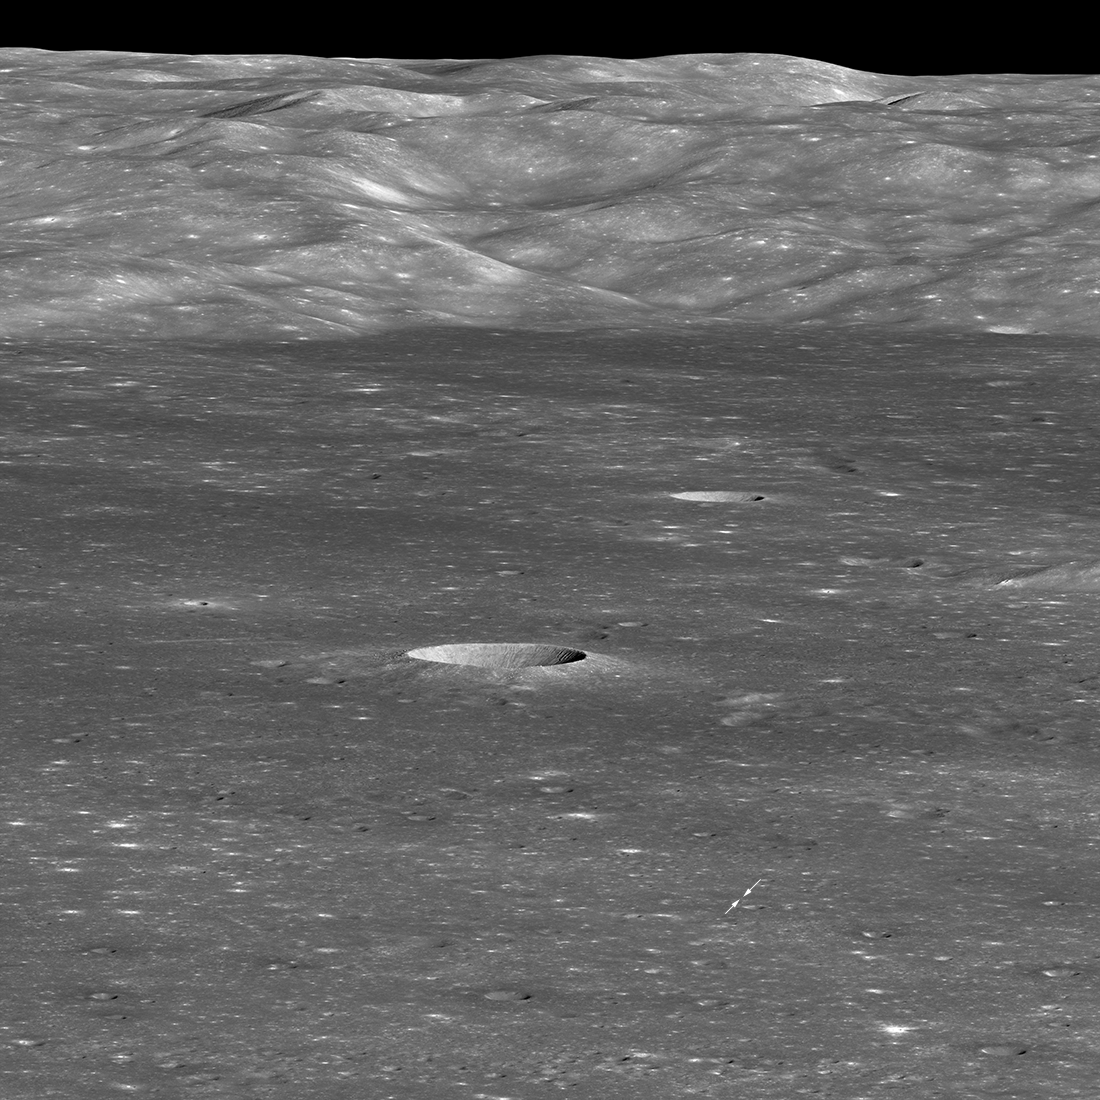 East to west limb view of Von Kármán crater